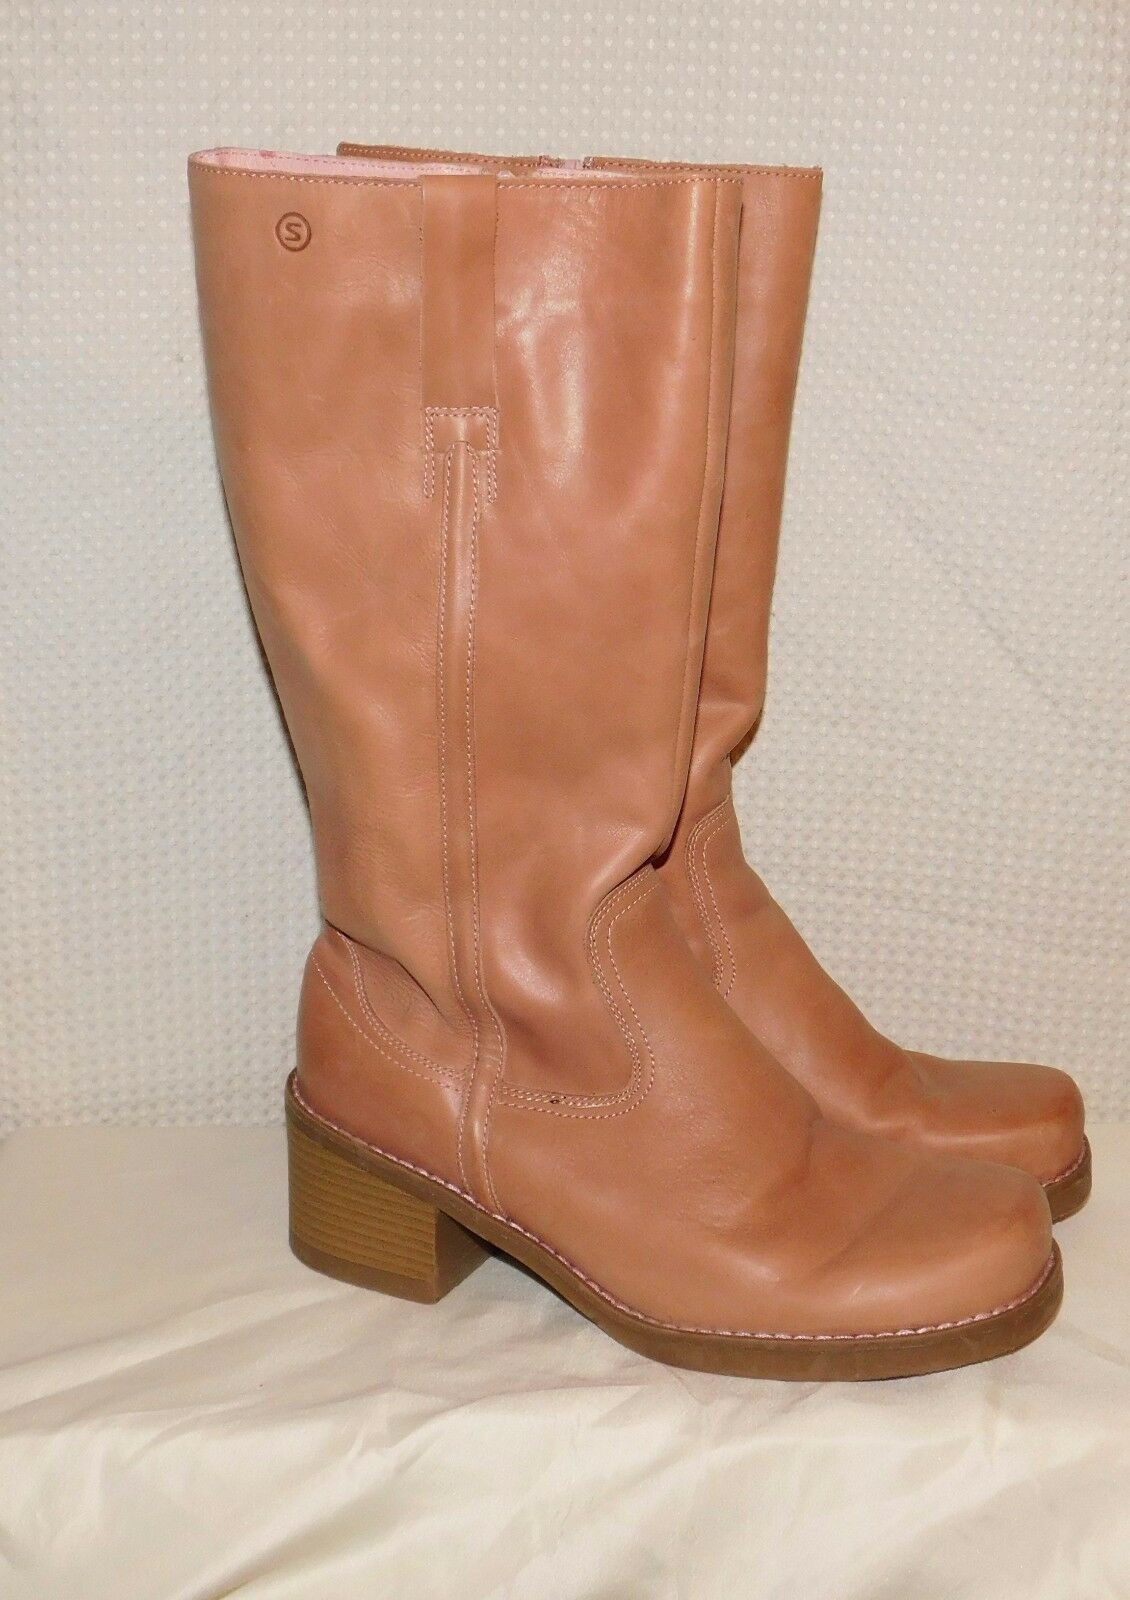 Womens Faux Leather Spring Deanne High Boots sz 10 EUC